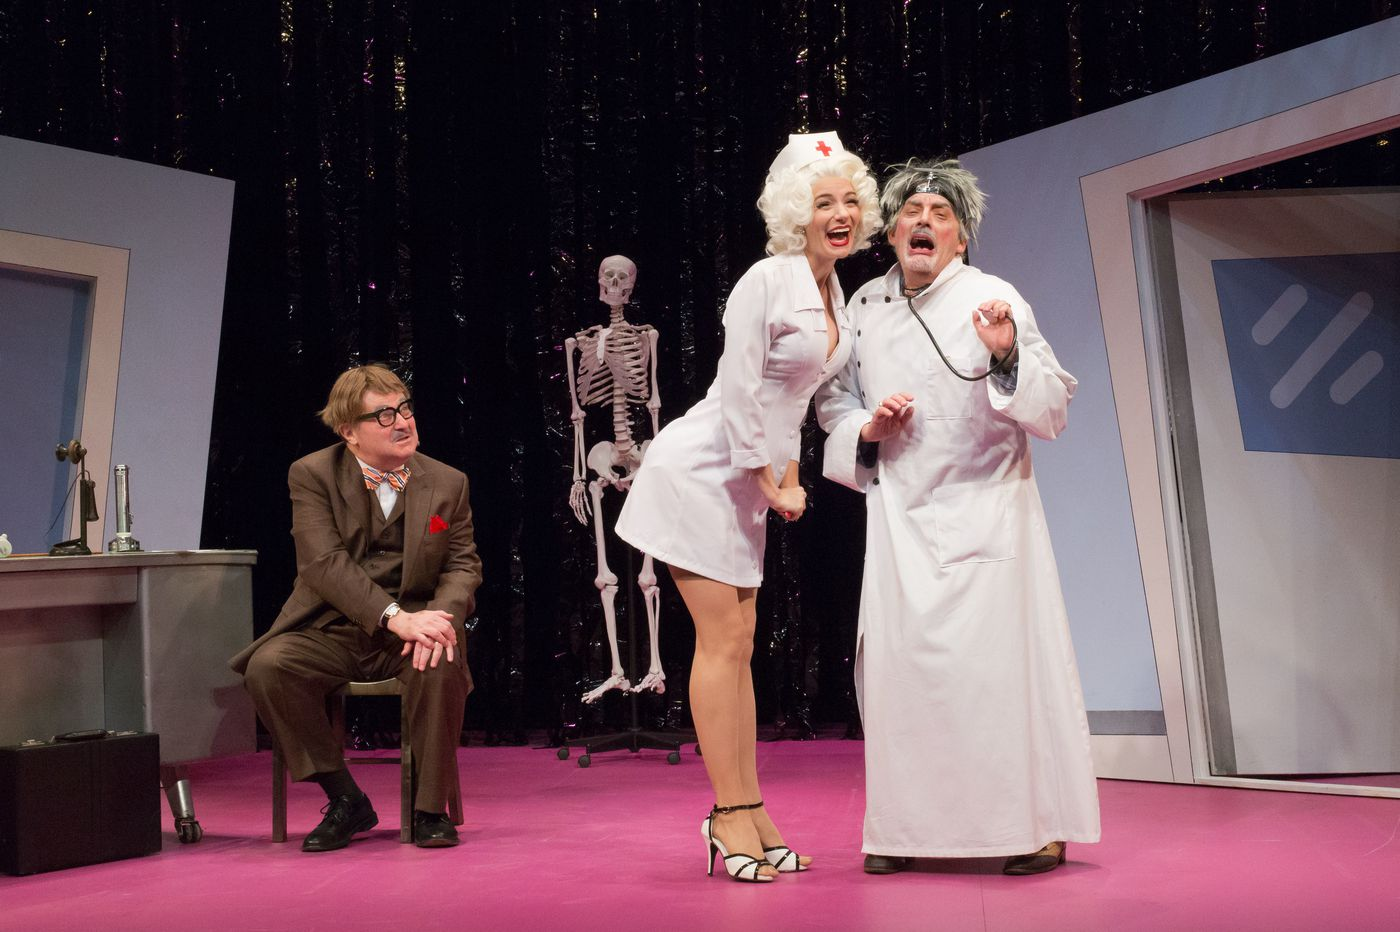 Spirited Bristol Riverside Theatre rendition of 'The Sunshine Boys' shows it's one of Neil Simon's best